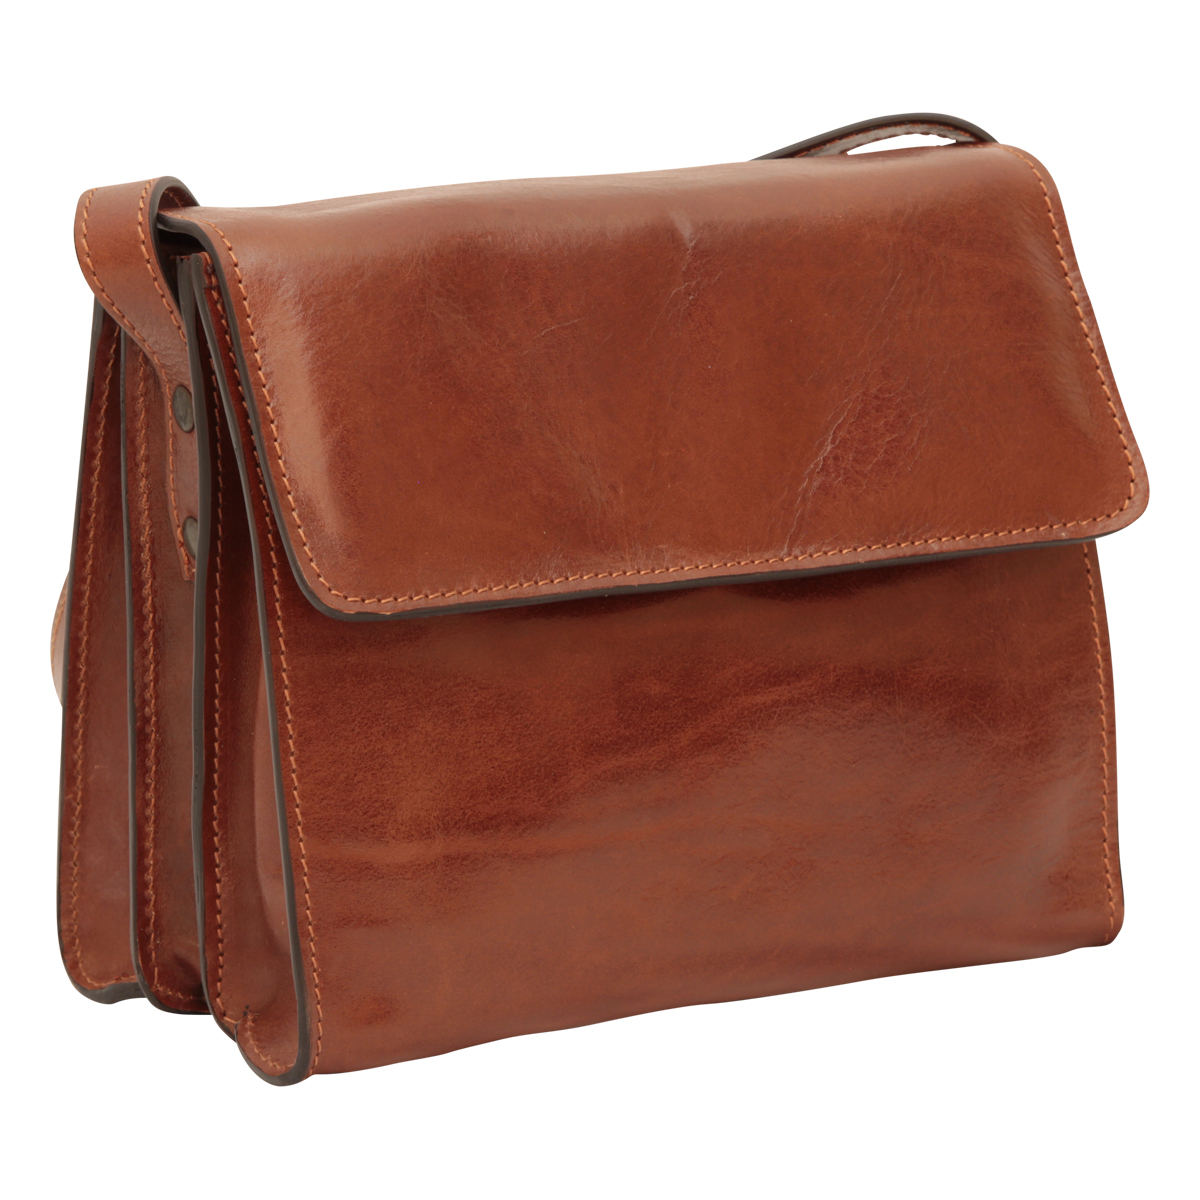 Full grain calfskin shoulder bag - Brown | 209305MA UK | Old Angler Firenze